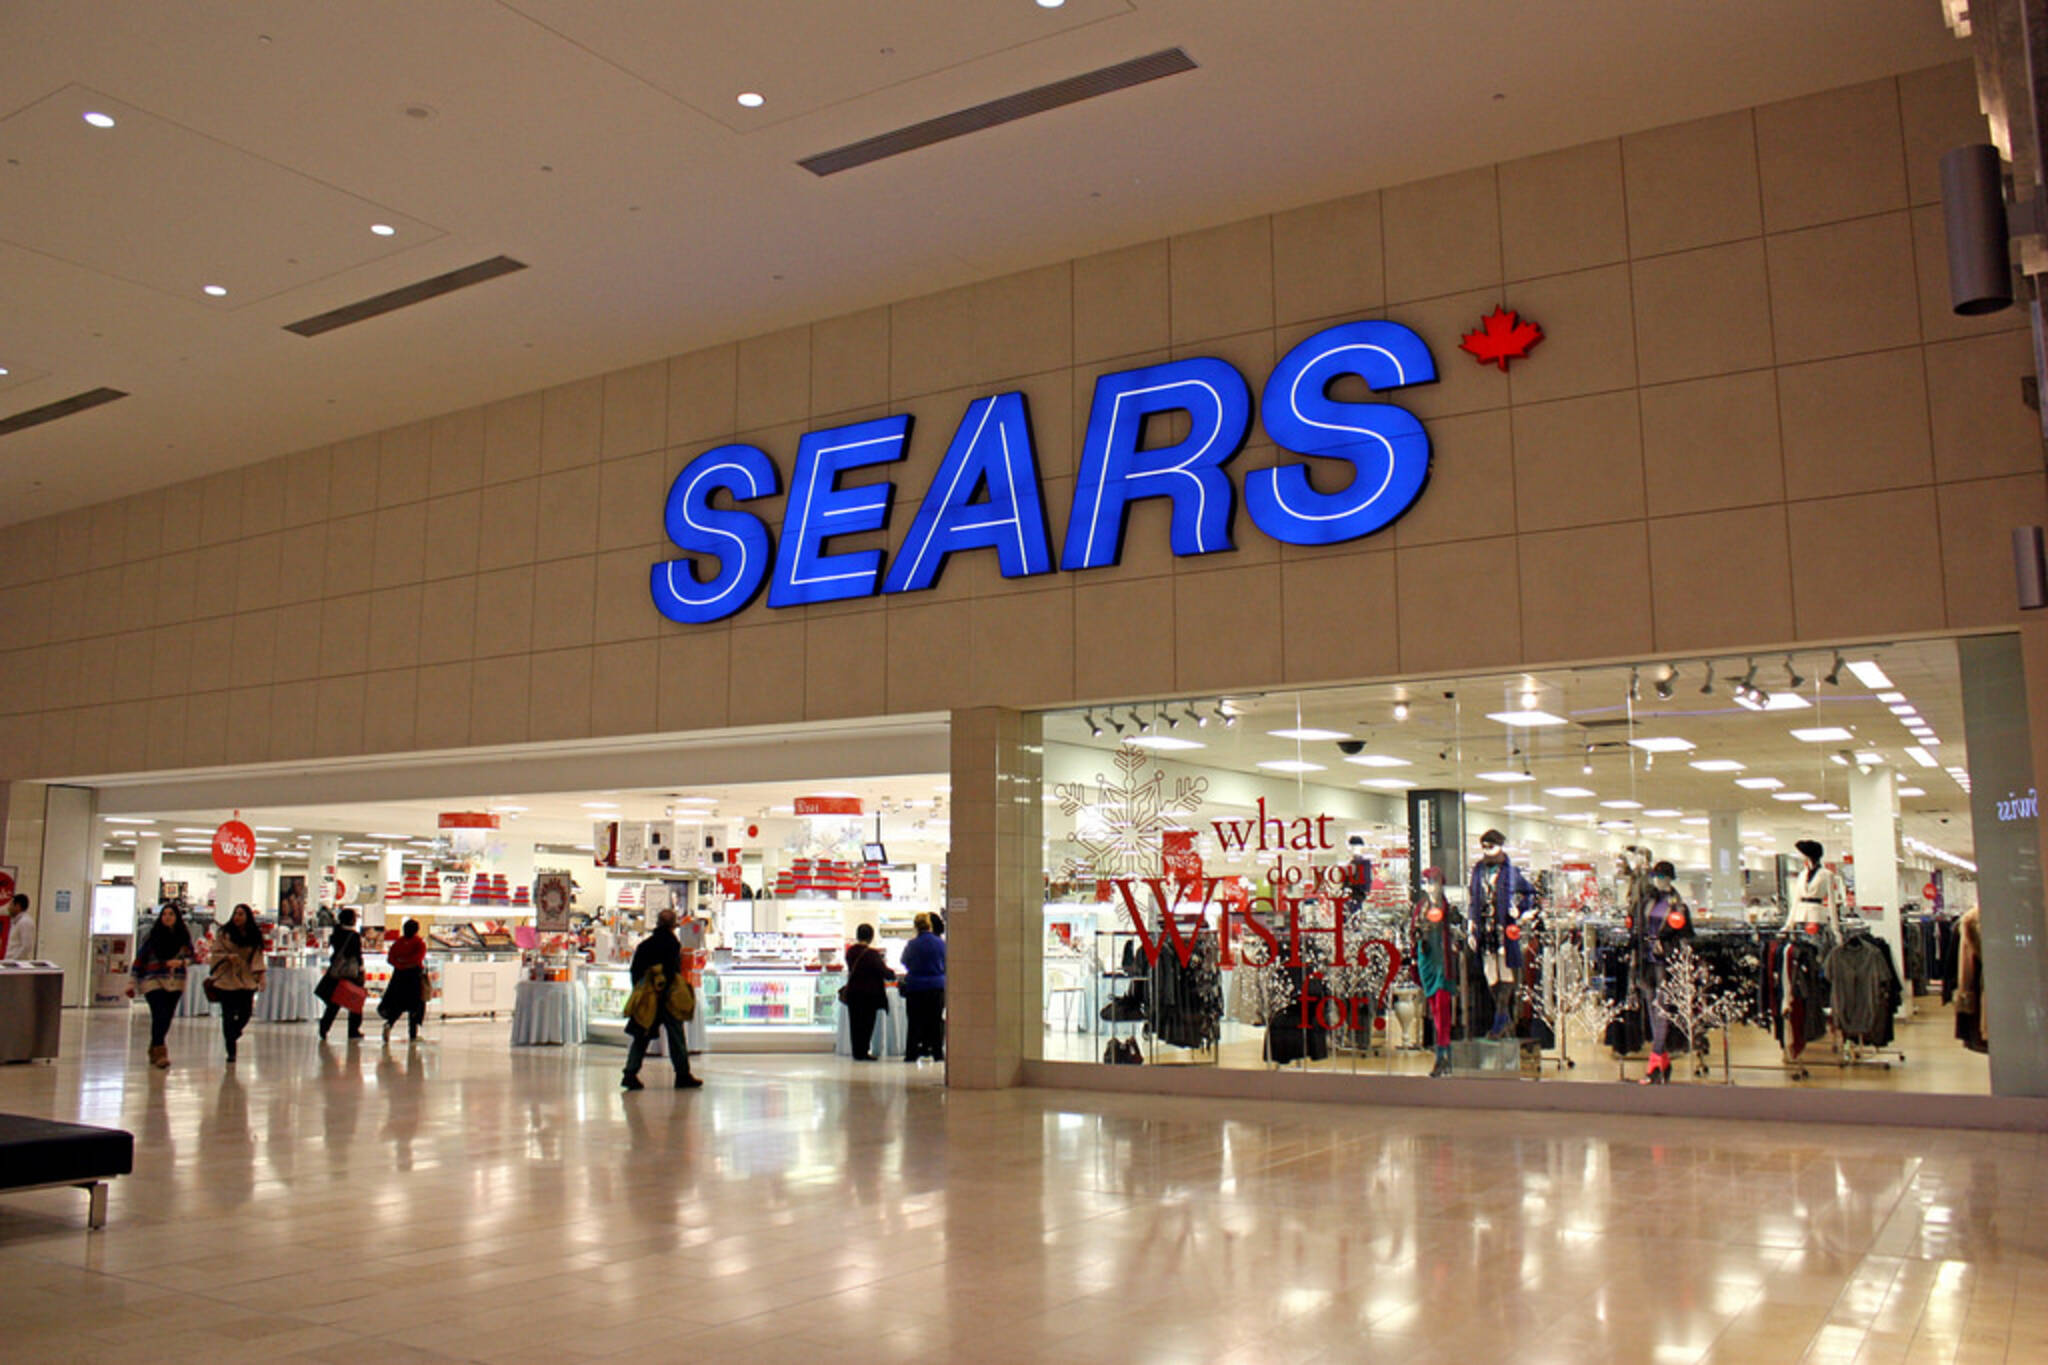 sears stores in toronto to host huge liquidation sale